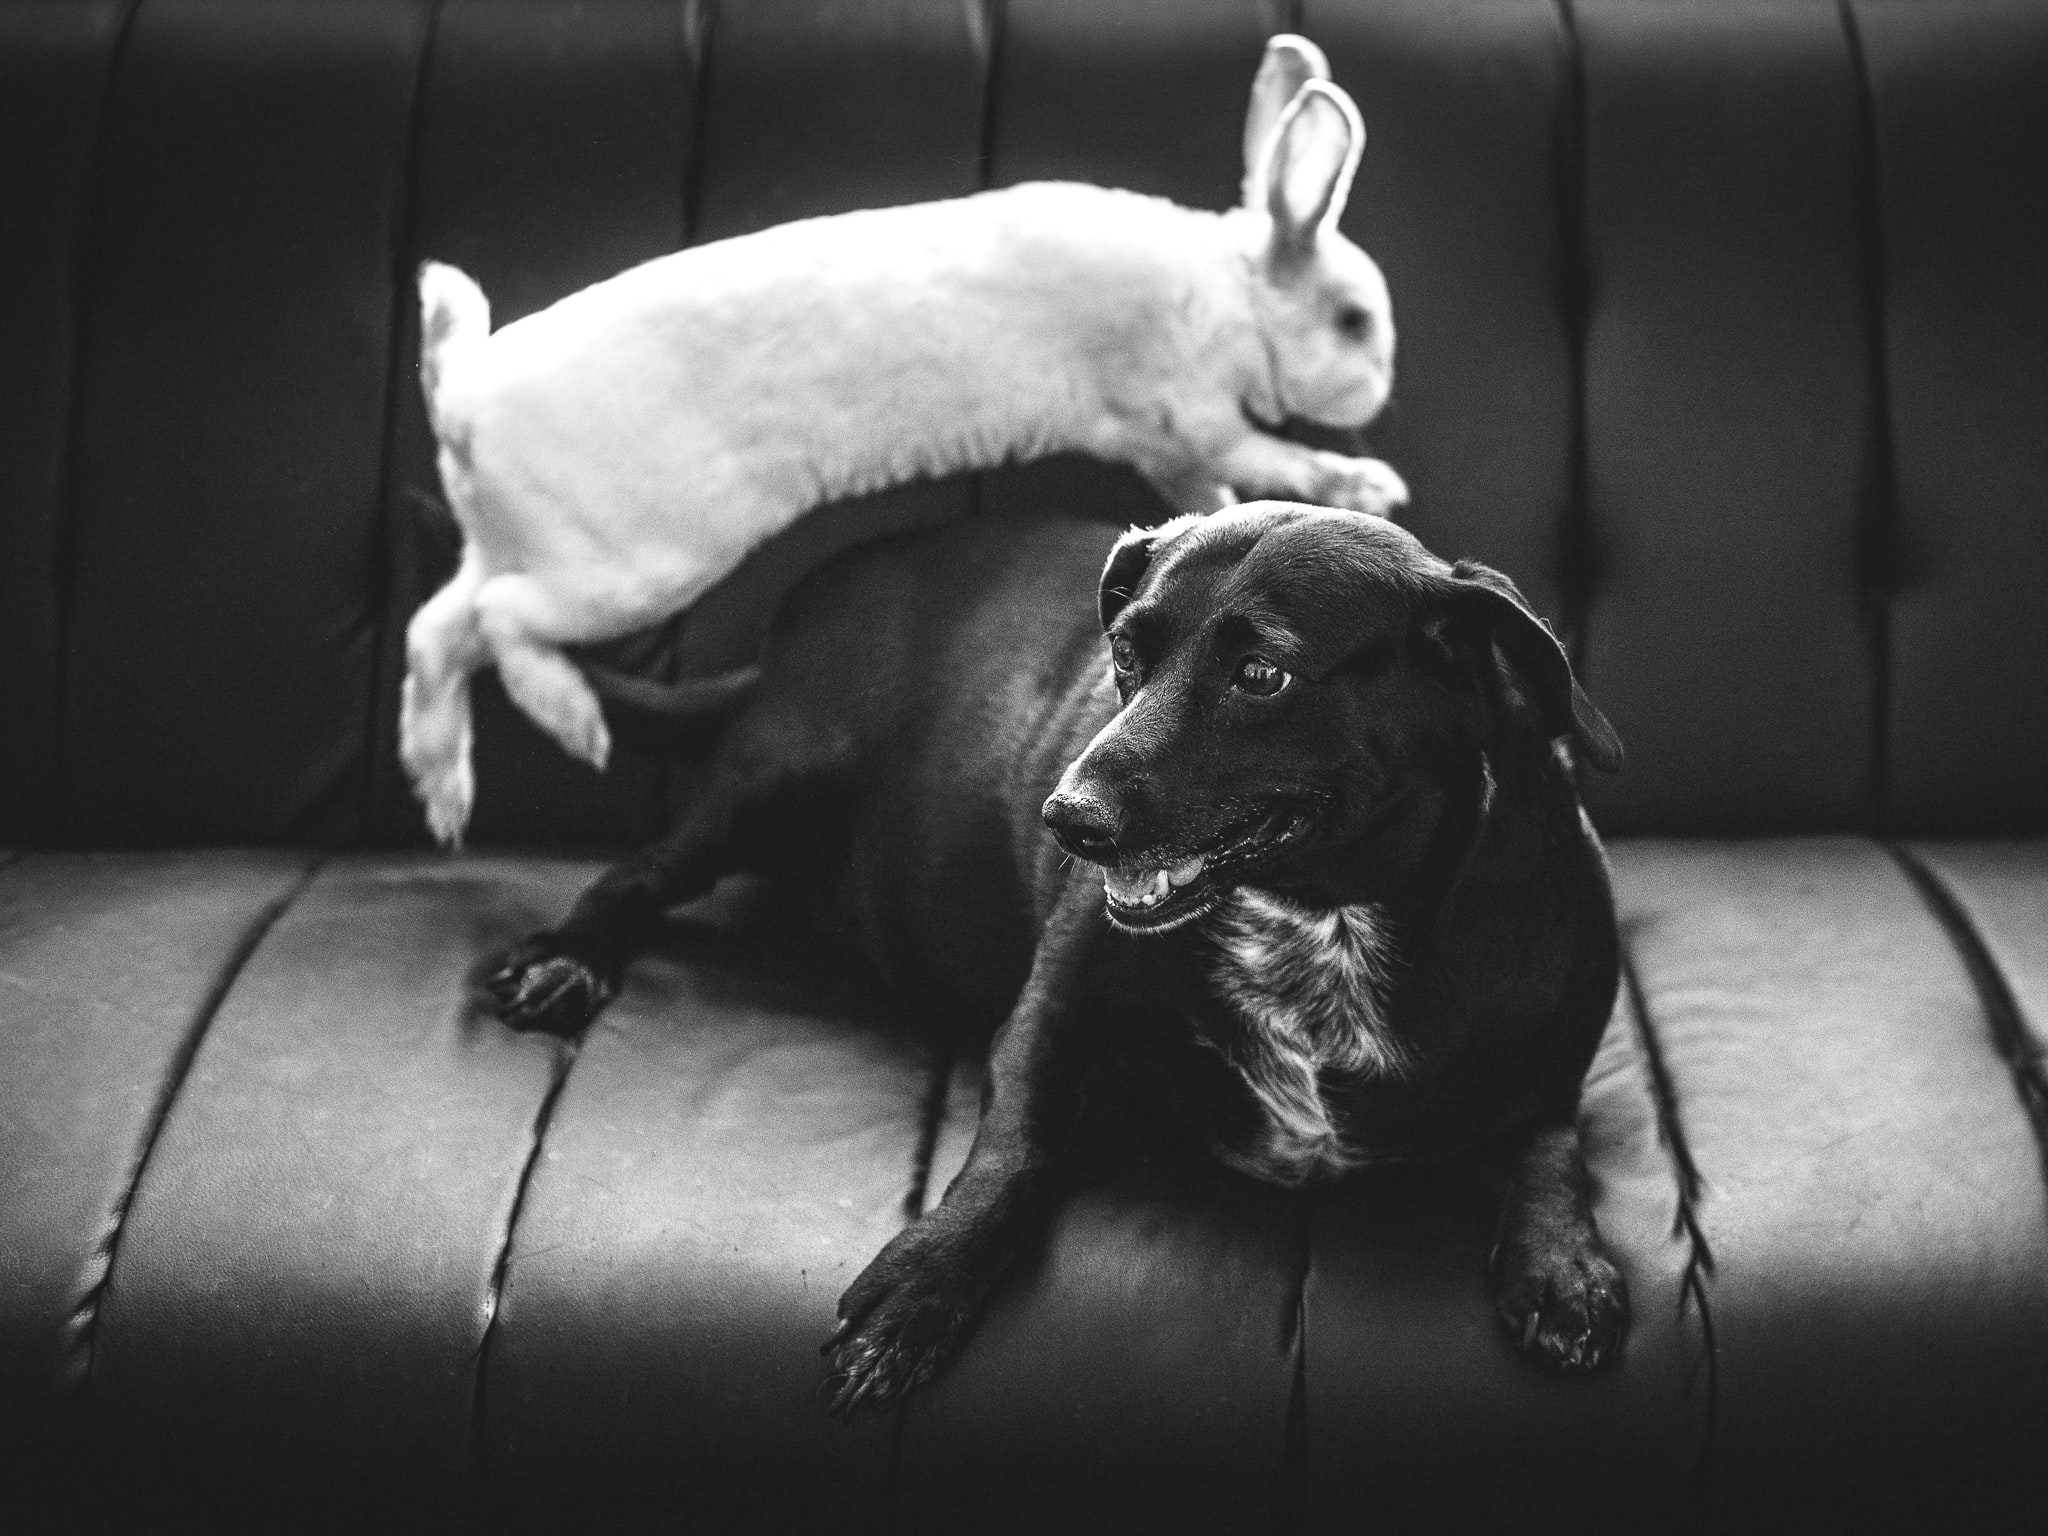 grayscale photo of rabbit and dog on vehicle back seat